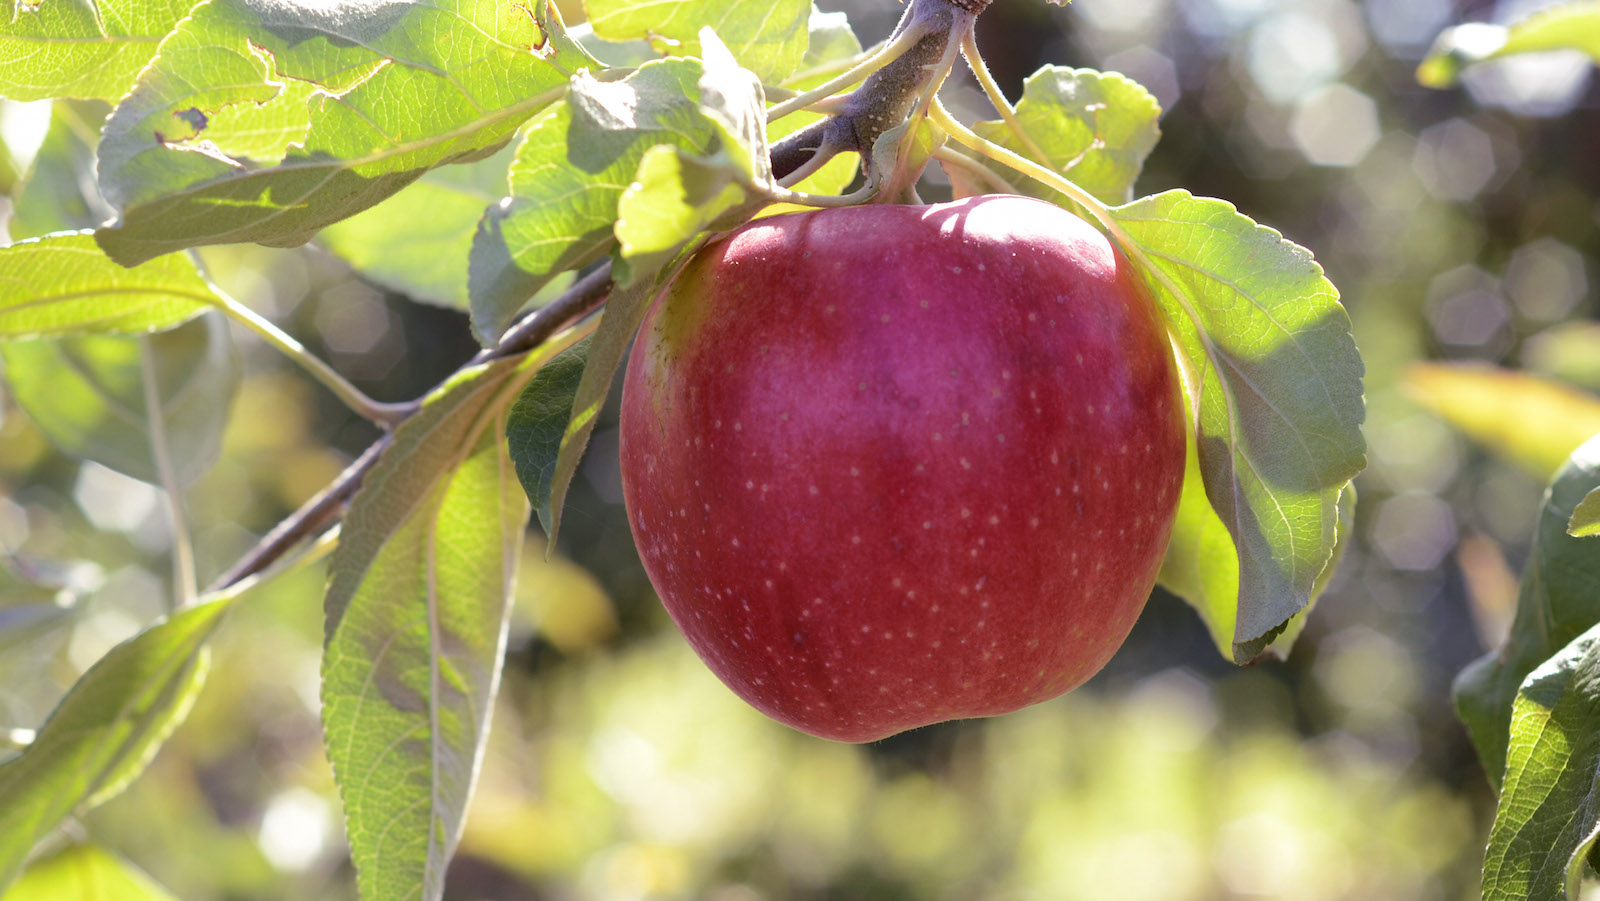 A new apple variety that is part of the Cornell University apple breeding program, hangs on a branch at the university's Fruit and Vegetable Research Farm in Geneva, N.Y., Monday, Sept. 23, 2013.